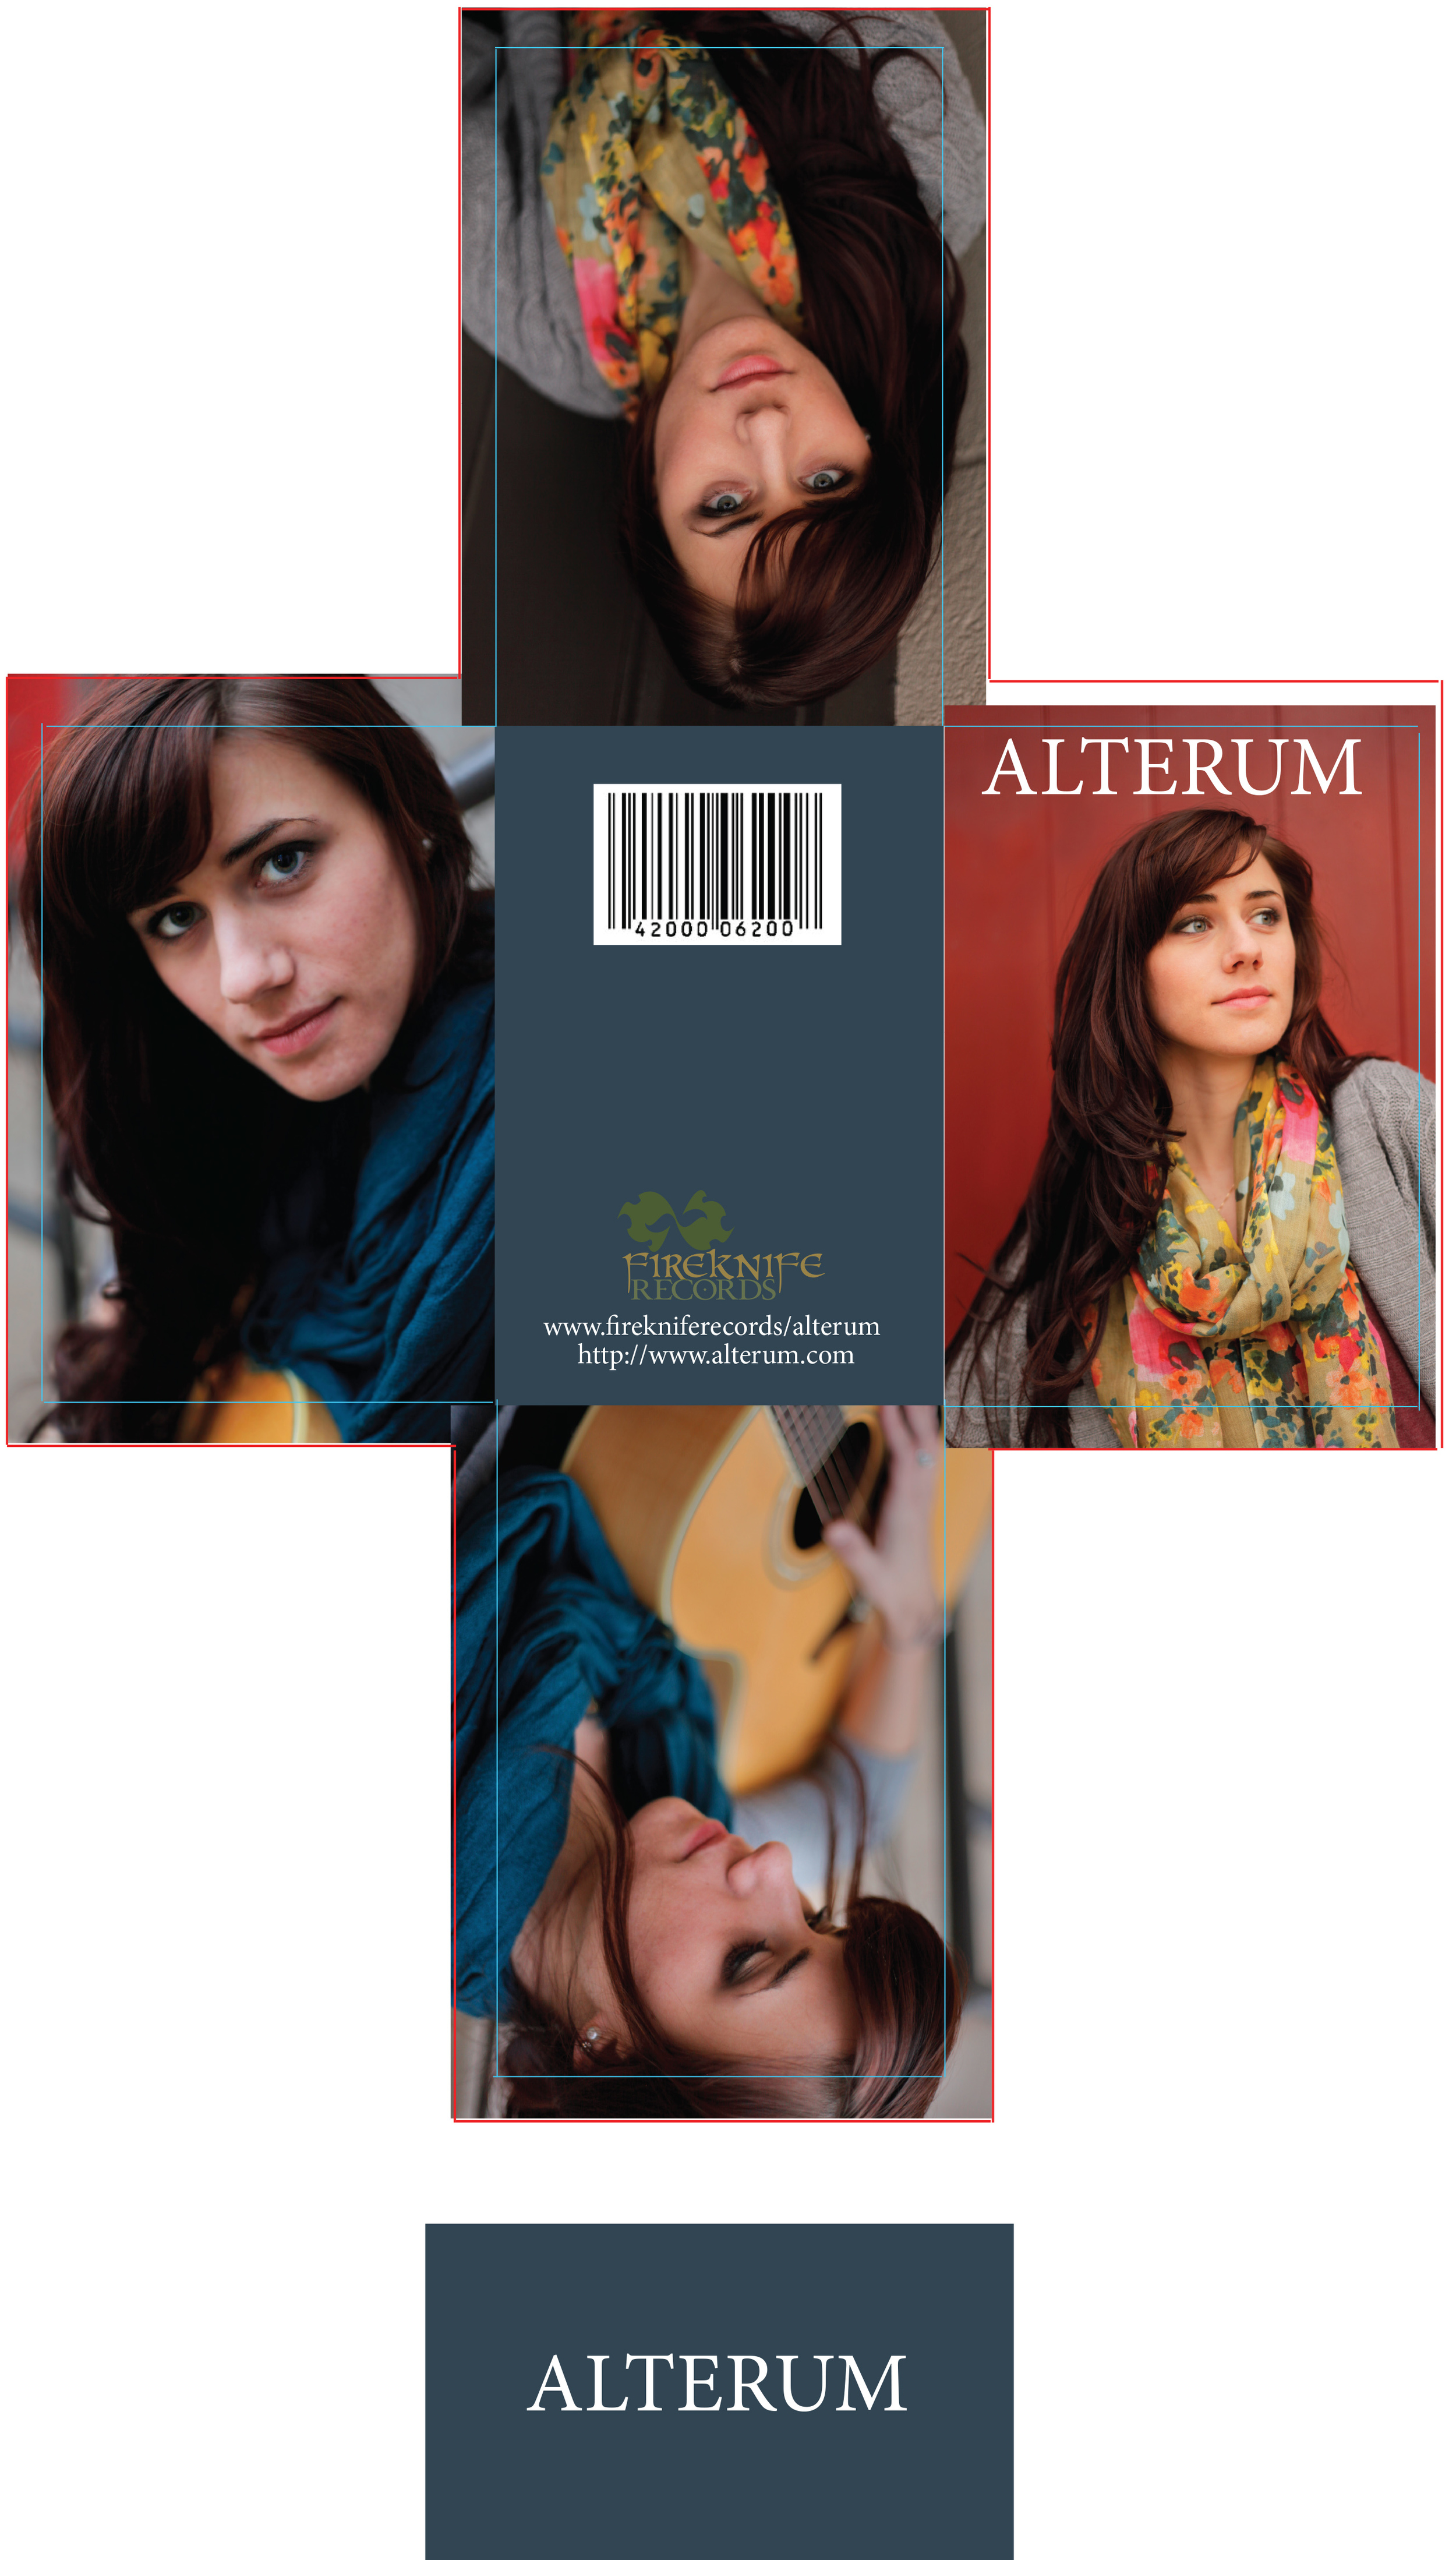 """Designed a digital album for a band I call """"Alterum"""" produced by """"Fireknife Records"""" also designed by me."""